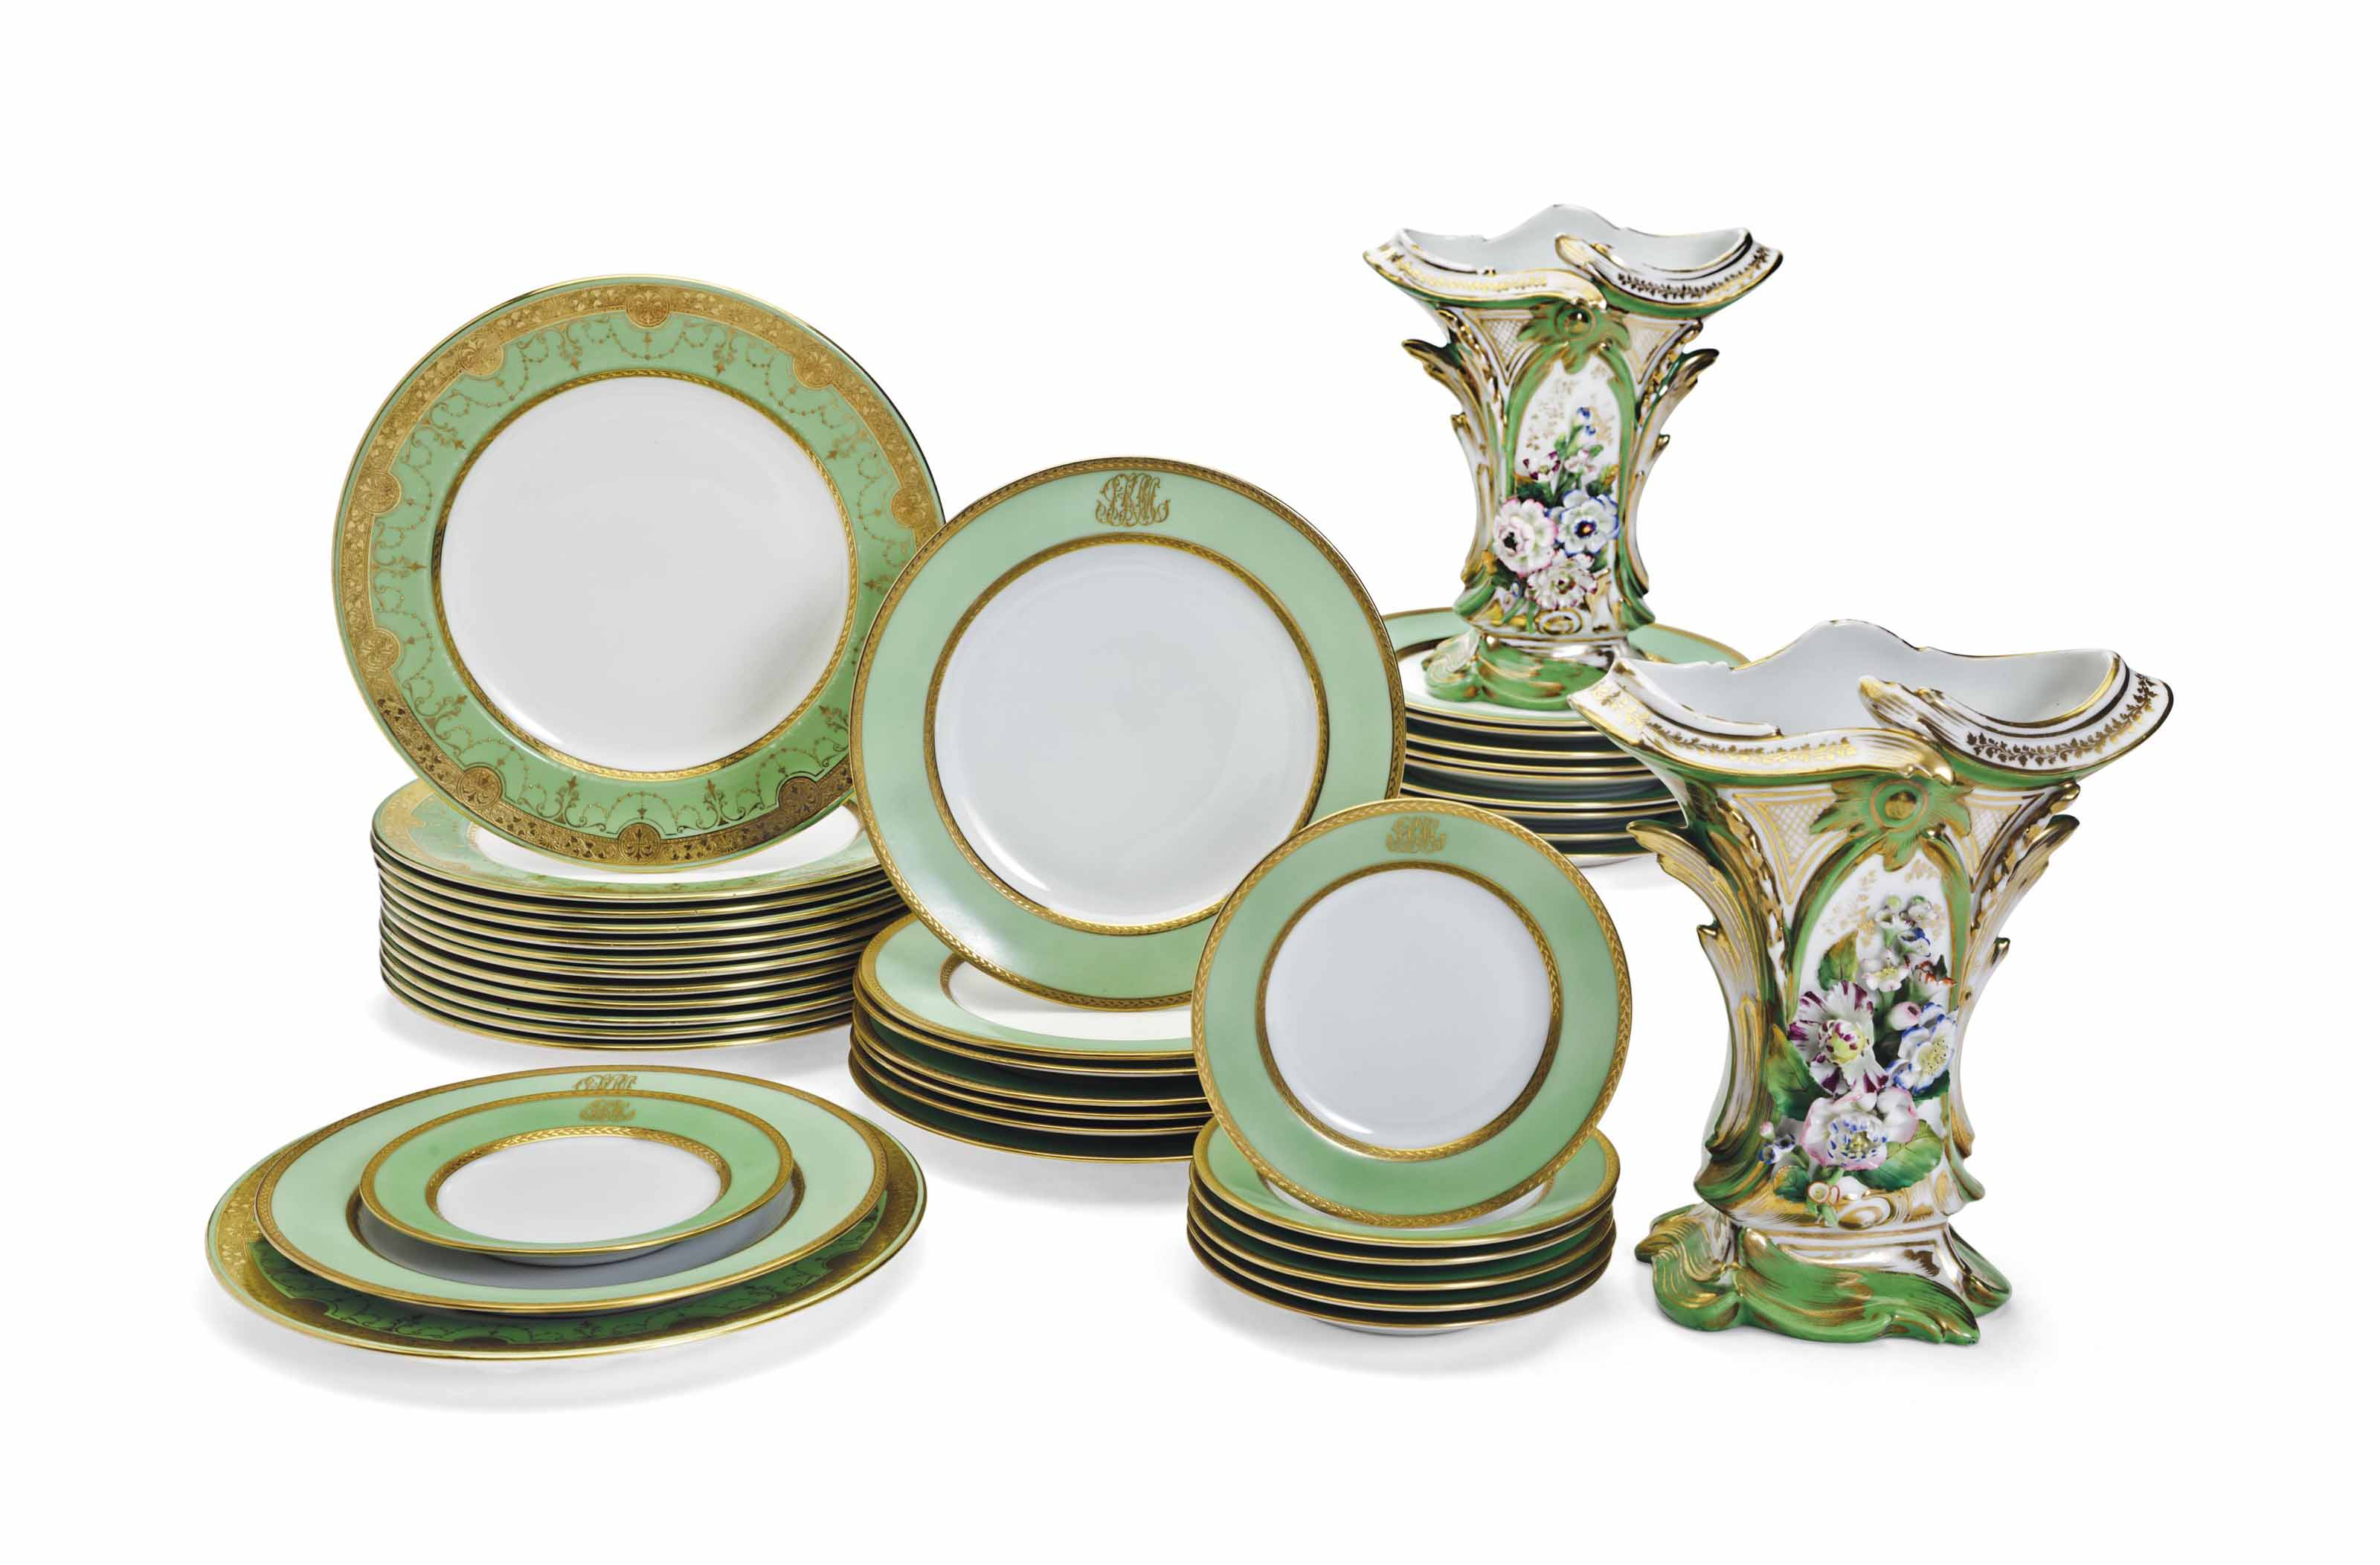 AN ASSEMBLED GREEN-GROUND PORCELAIN PART SERVICE AND A PAIR OF VASES